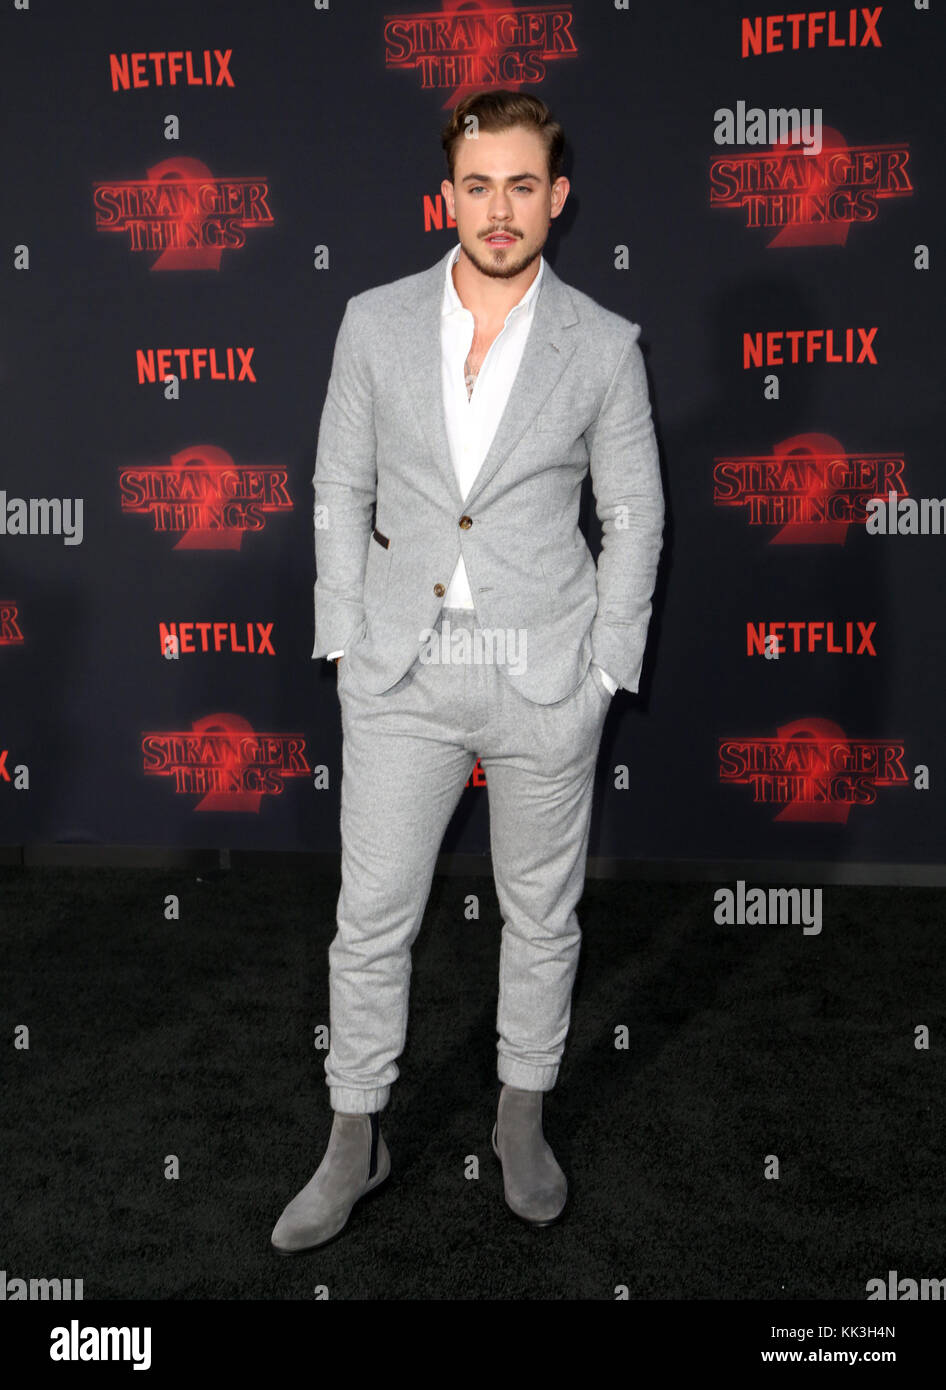 Celebrities attend Netflix's Stranger Things 2 Premiere at Westwood Village Theater.  Featuring: Dacre Montgomery - Stock Image